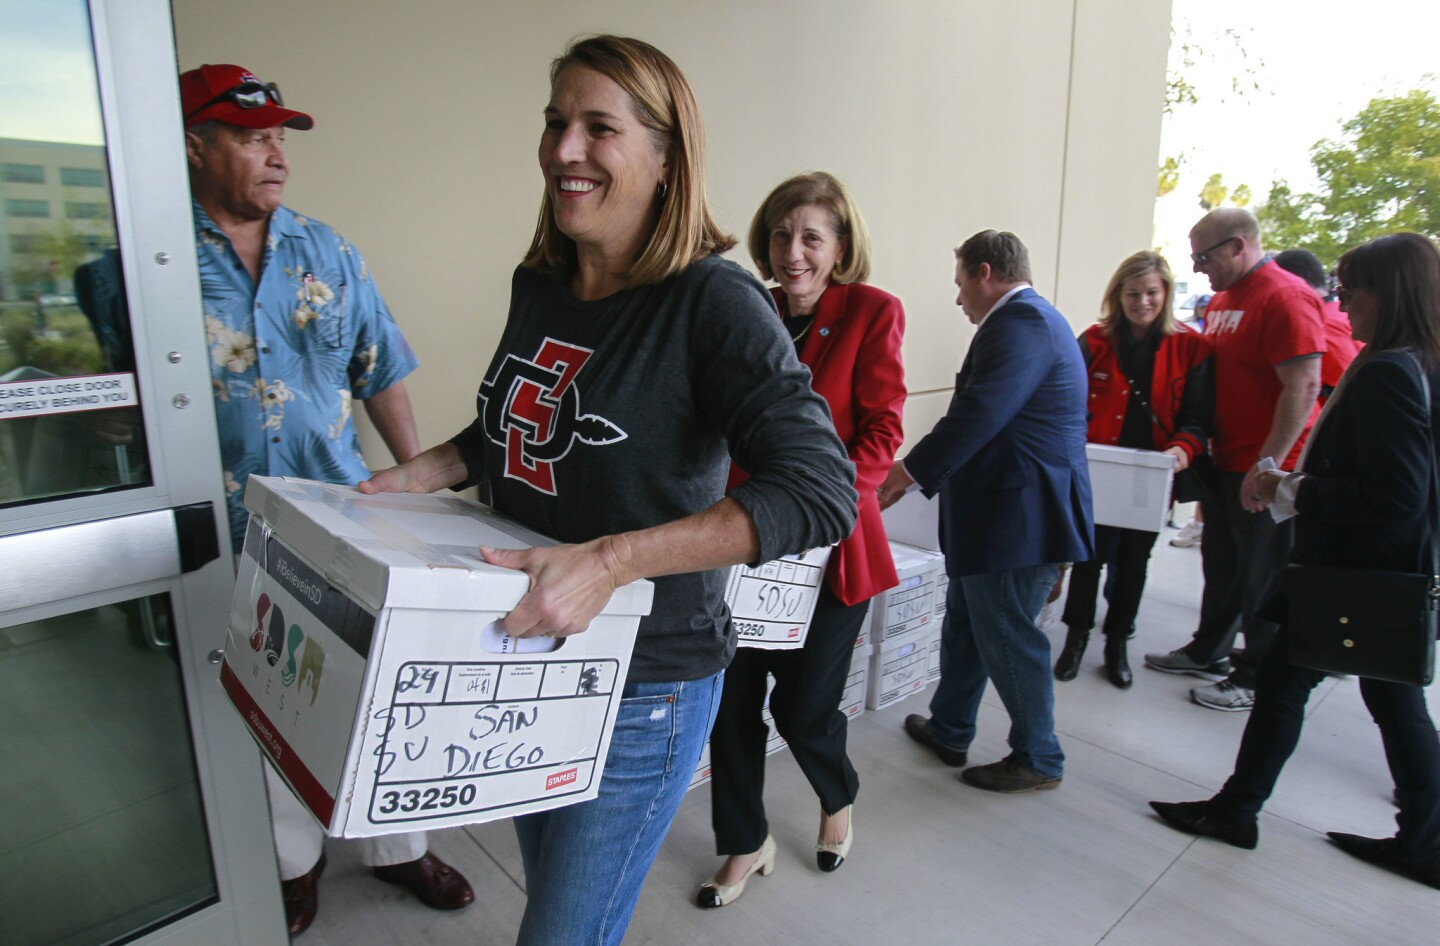 Supporter Kathleen Czech, left, and San Diego City Council member Barbara Bry, center, help carry boxes of the more than 106,000 signatures into the San Diego County Registrar of Voters.